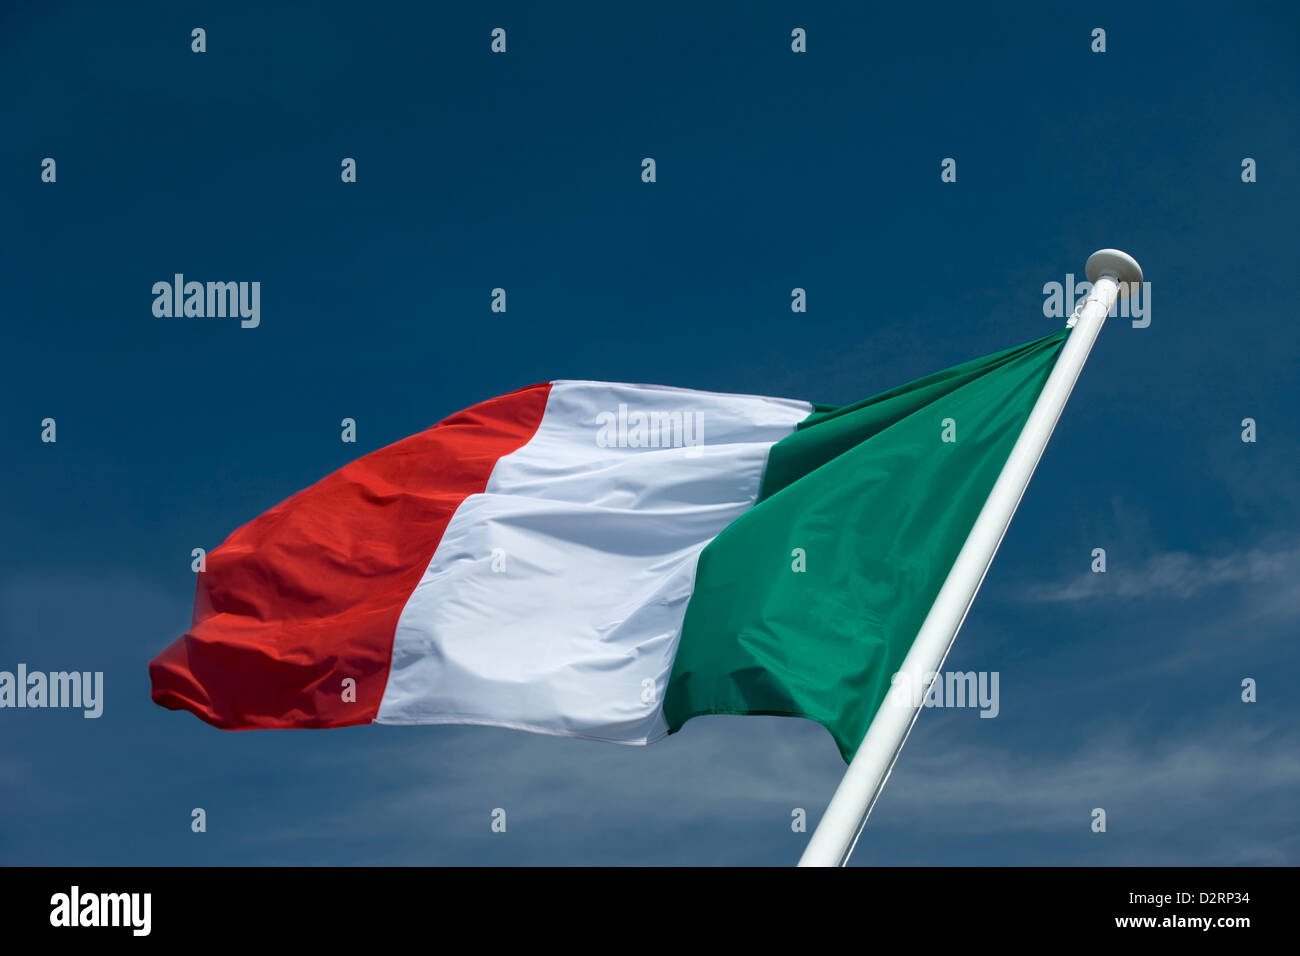 ITALIAN FLAG FLYING ON FLAGPOLE - Stock Image